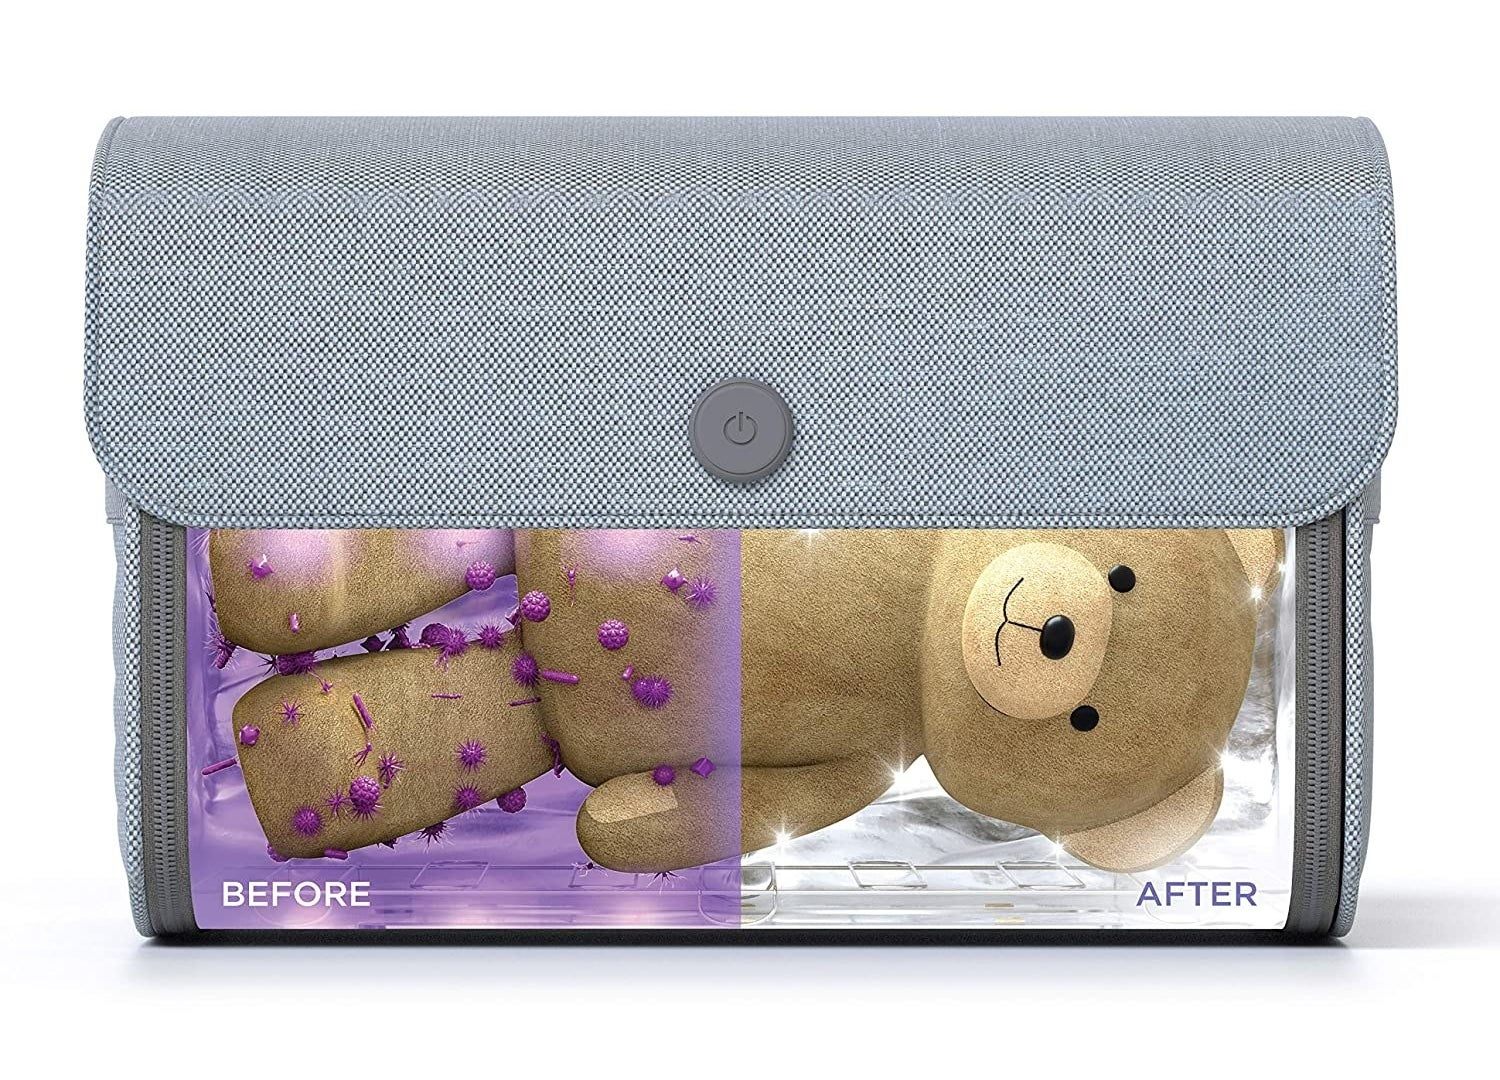 A bear with germs before being sanitized // The bear with no germs after being sanitized by the bag